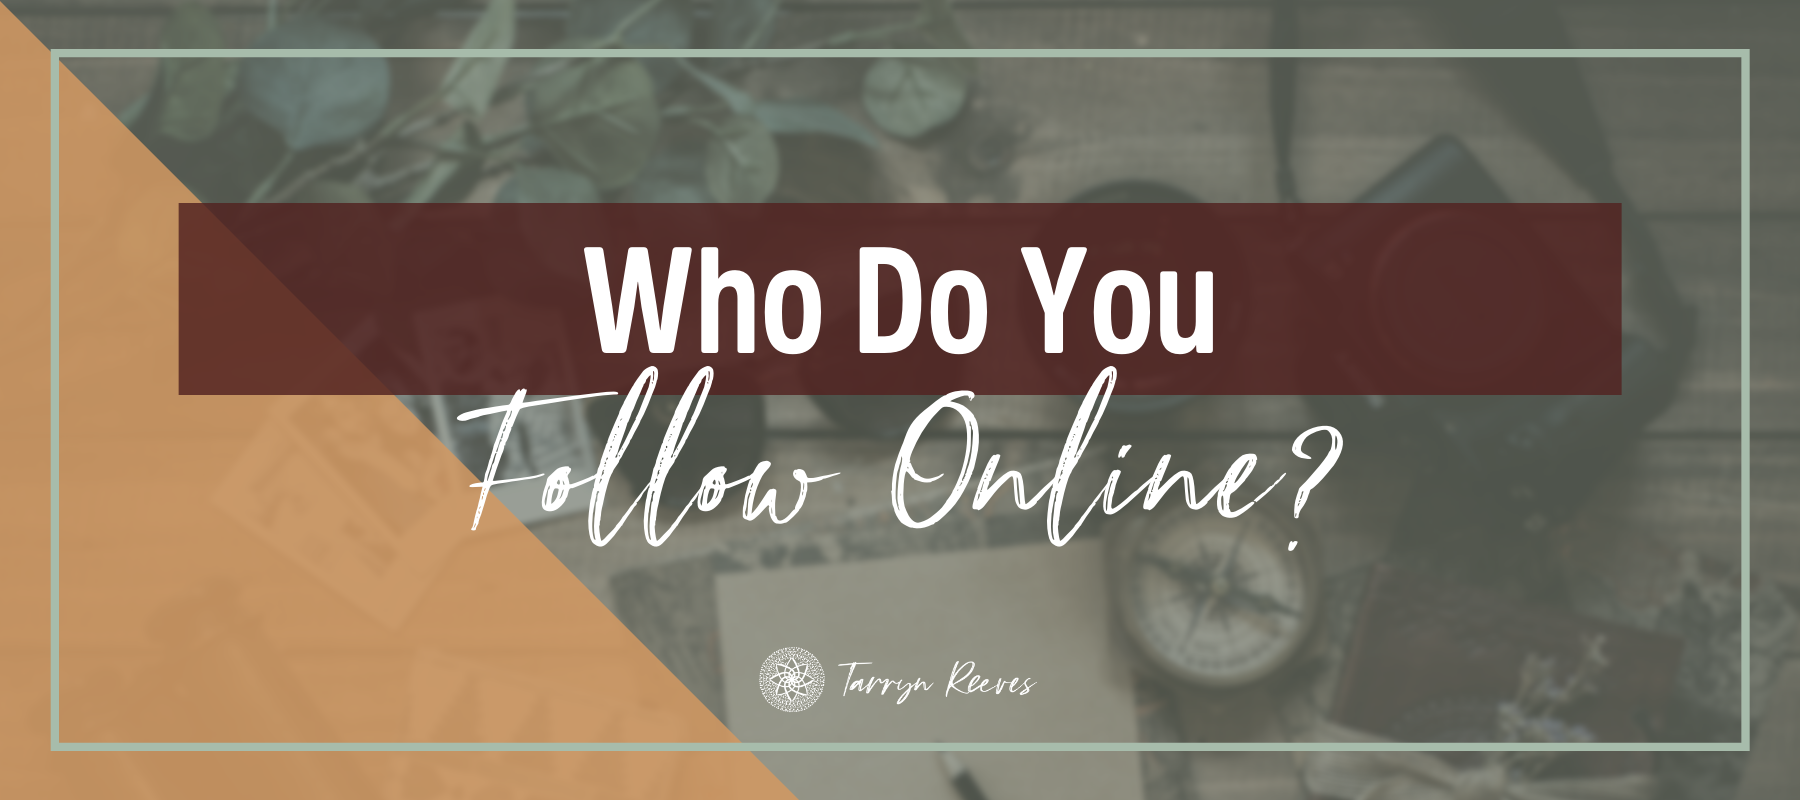 Who Do You Follow Online?